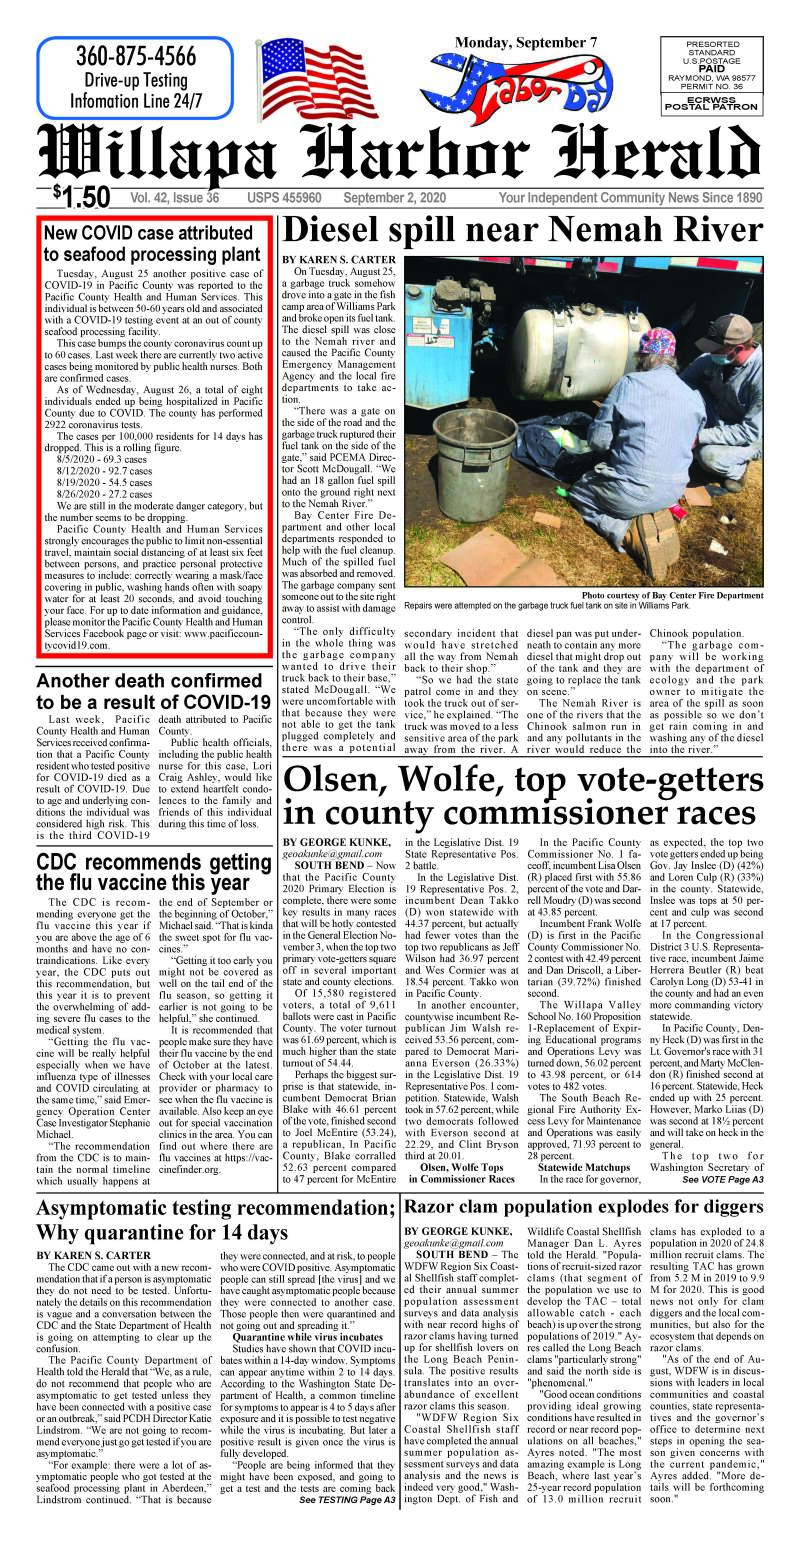 September 2, 2020 Willapa Harbor Herald and Pacific County Press